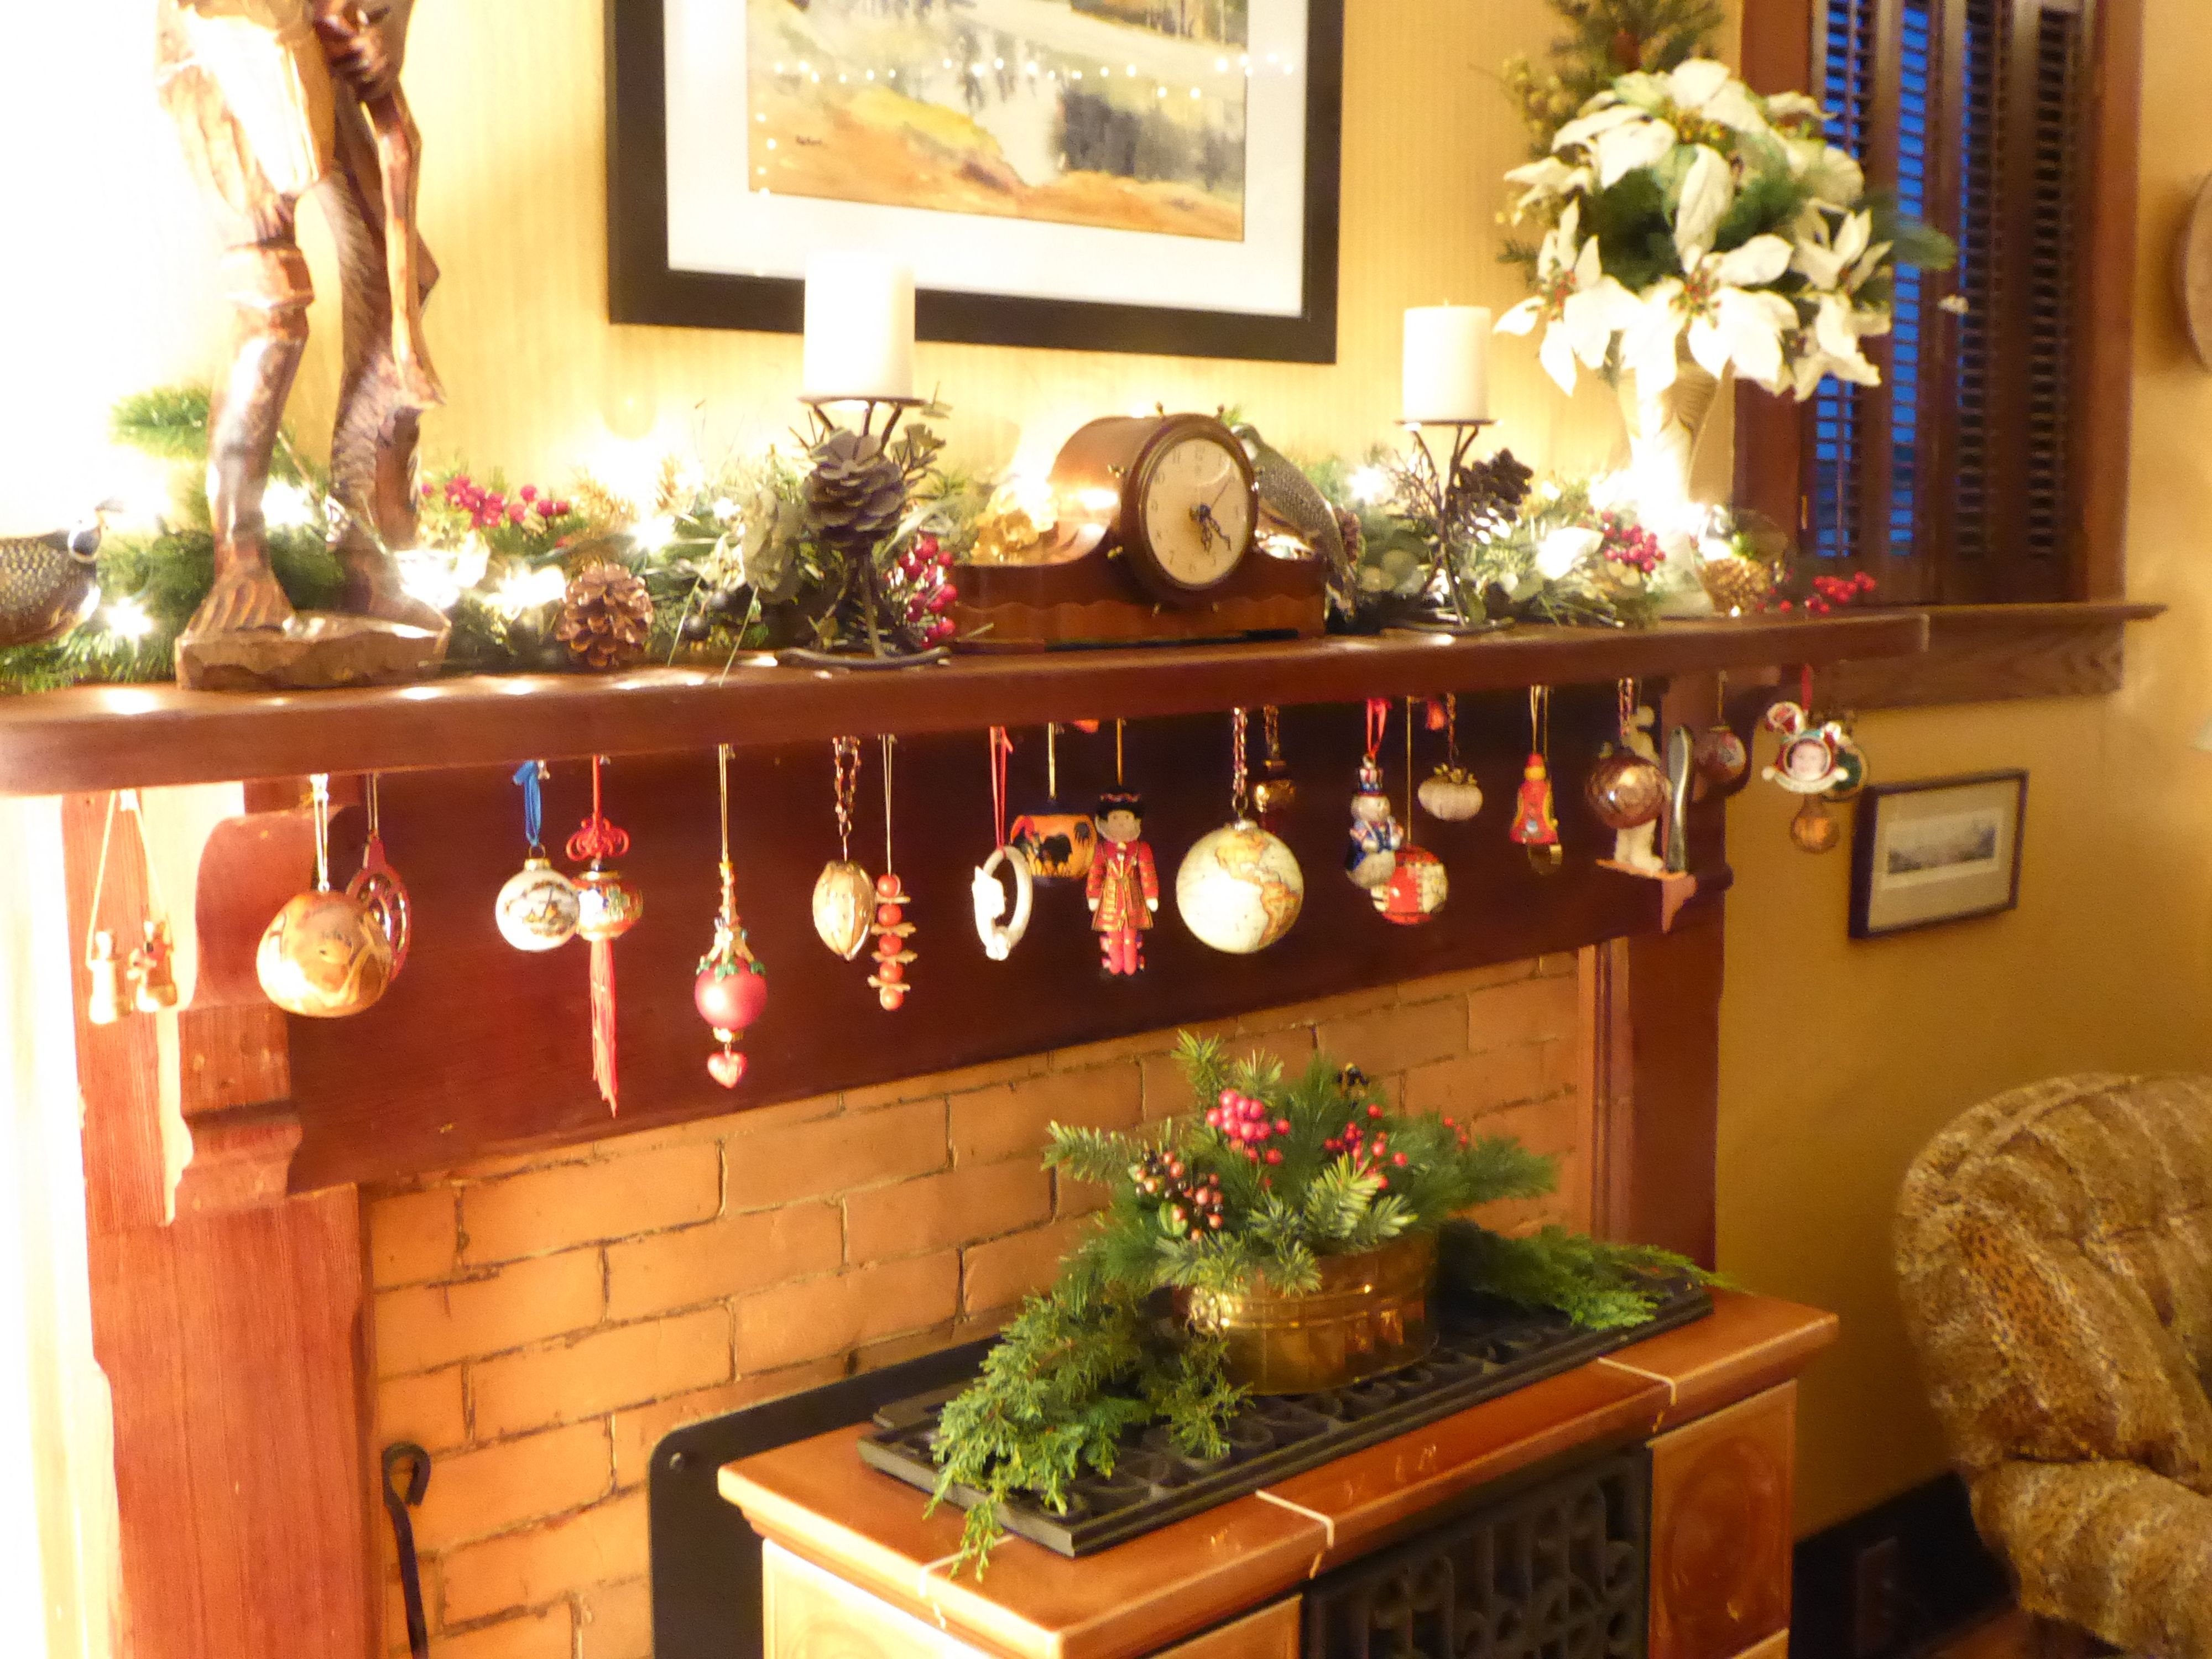 Even with no tree this year, we still enjoyed our favorite ornaments  hanging from the